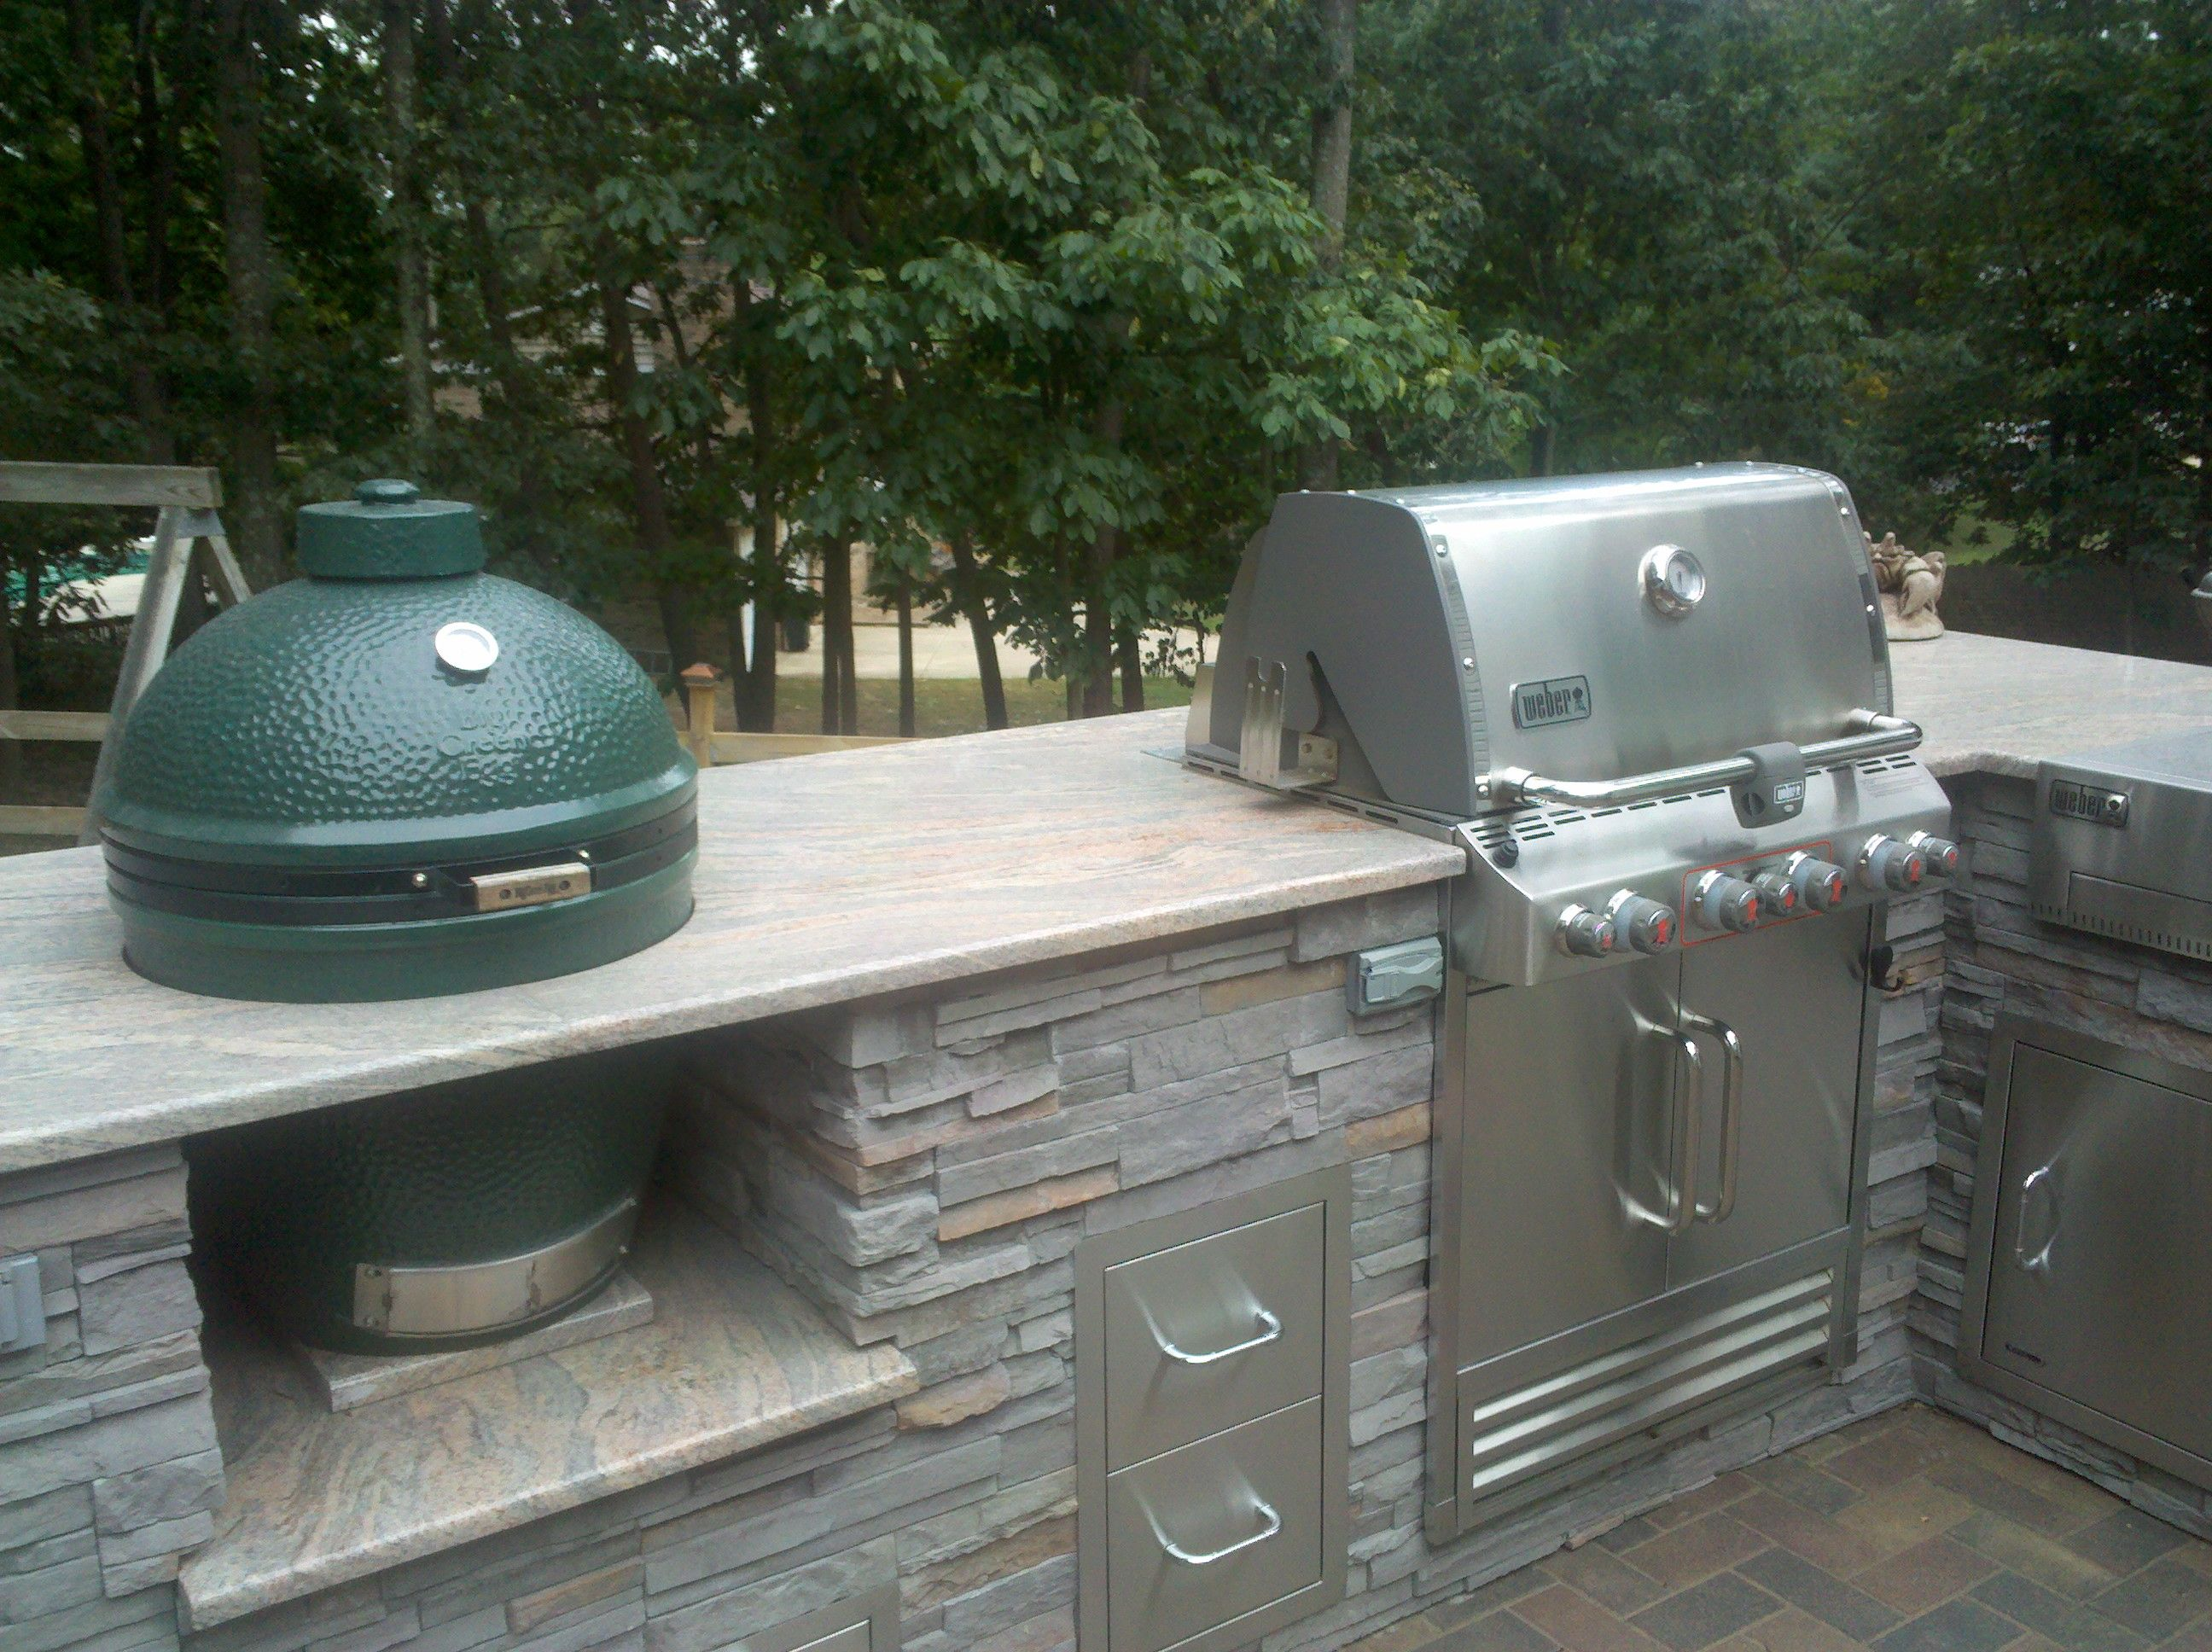 Big Green Egg Outdoor Küche White Plains Md Outdoor Kitchen With Built In Grill And Big